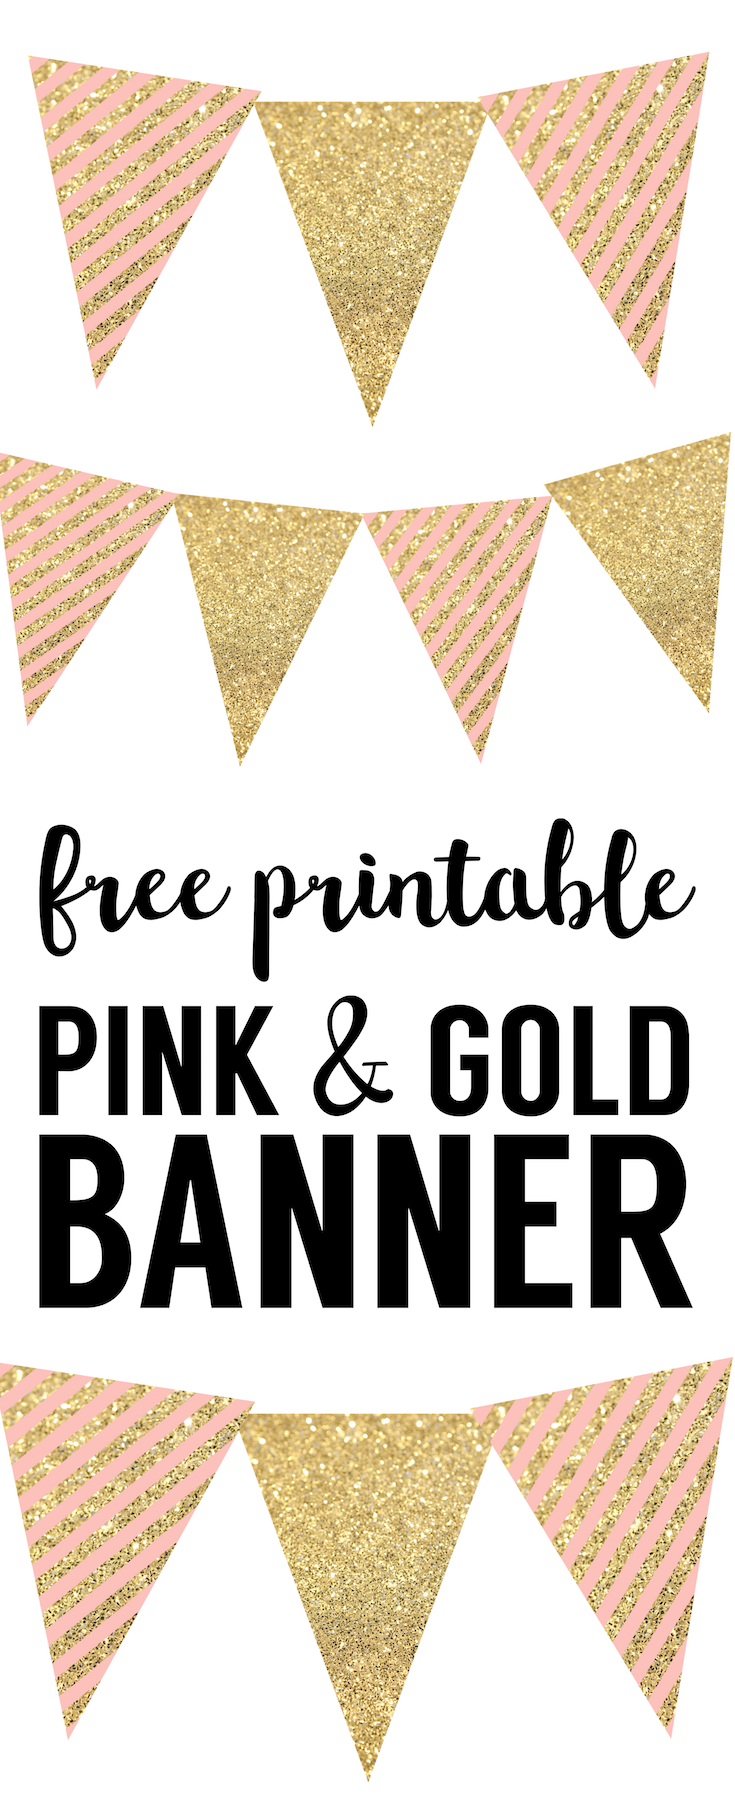 Pink And Gold Bathroom Decor: Pink And Gold Banner Free Printable